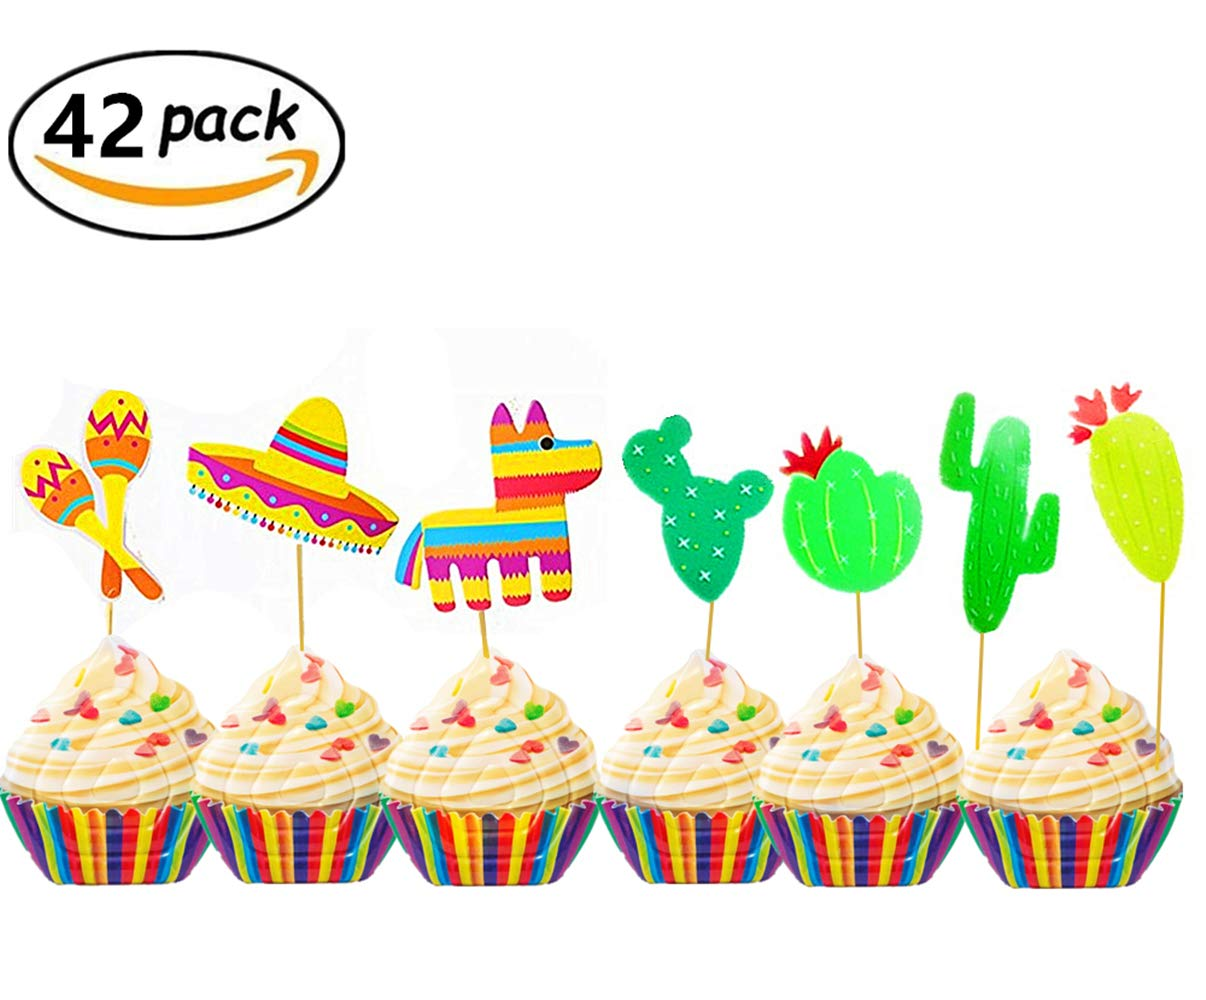 JeVenis (42 pcs) Fiesta Cupcake Toppers Mexican Fiesta Party Striped Decorative Cake Topper for Mexican Themed Cactus Donkey Taco Pepper Sombrero Mustache Party Decorations